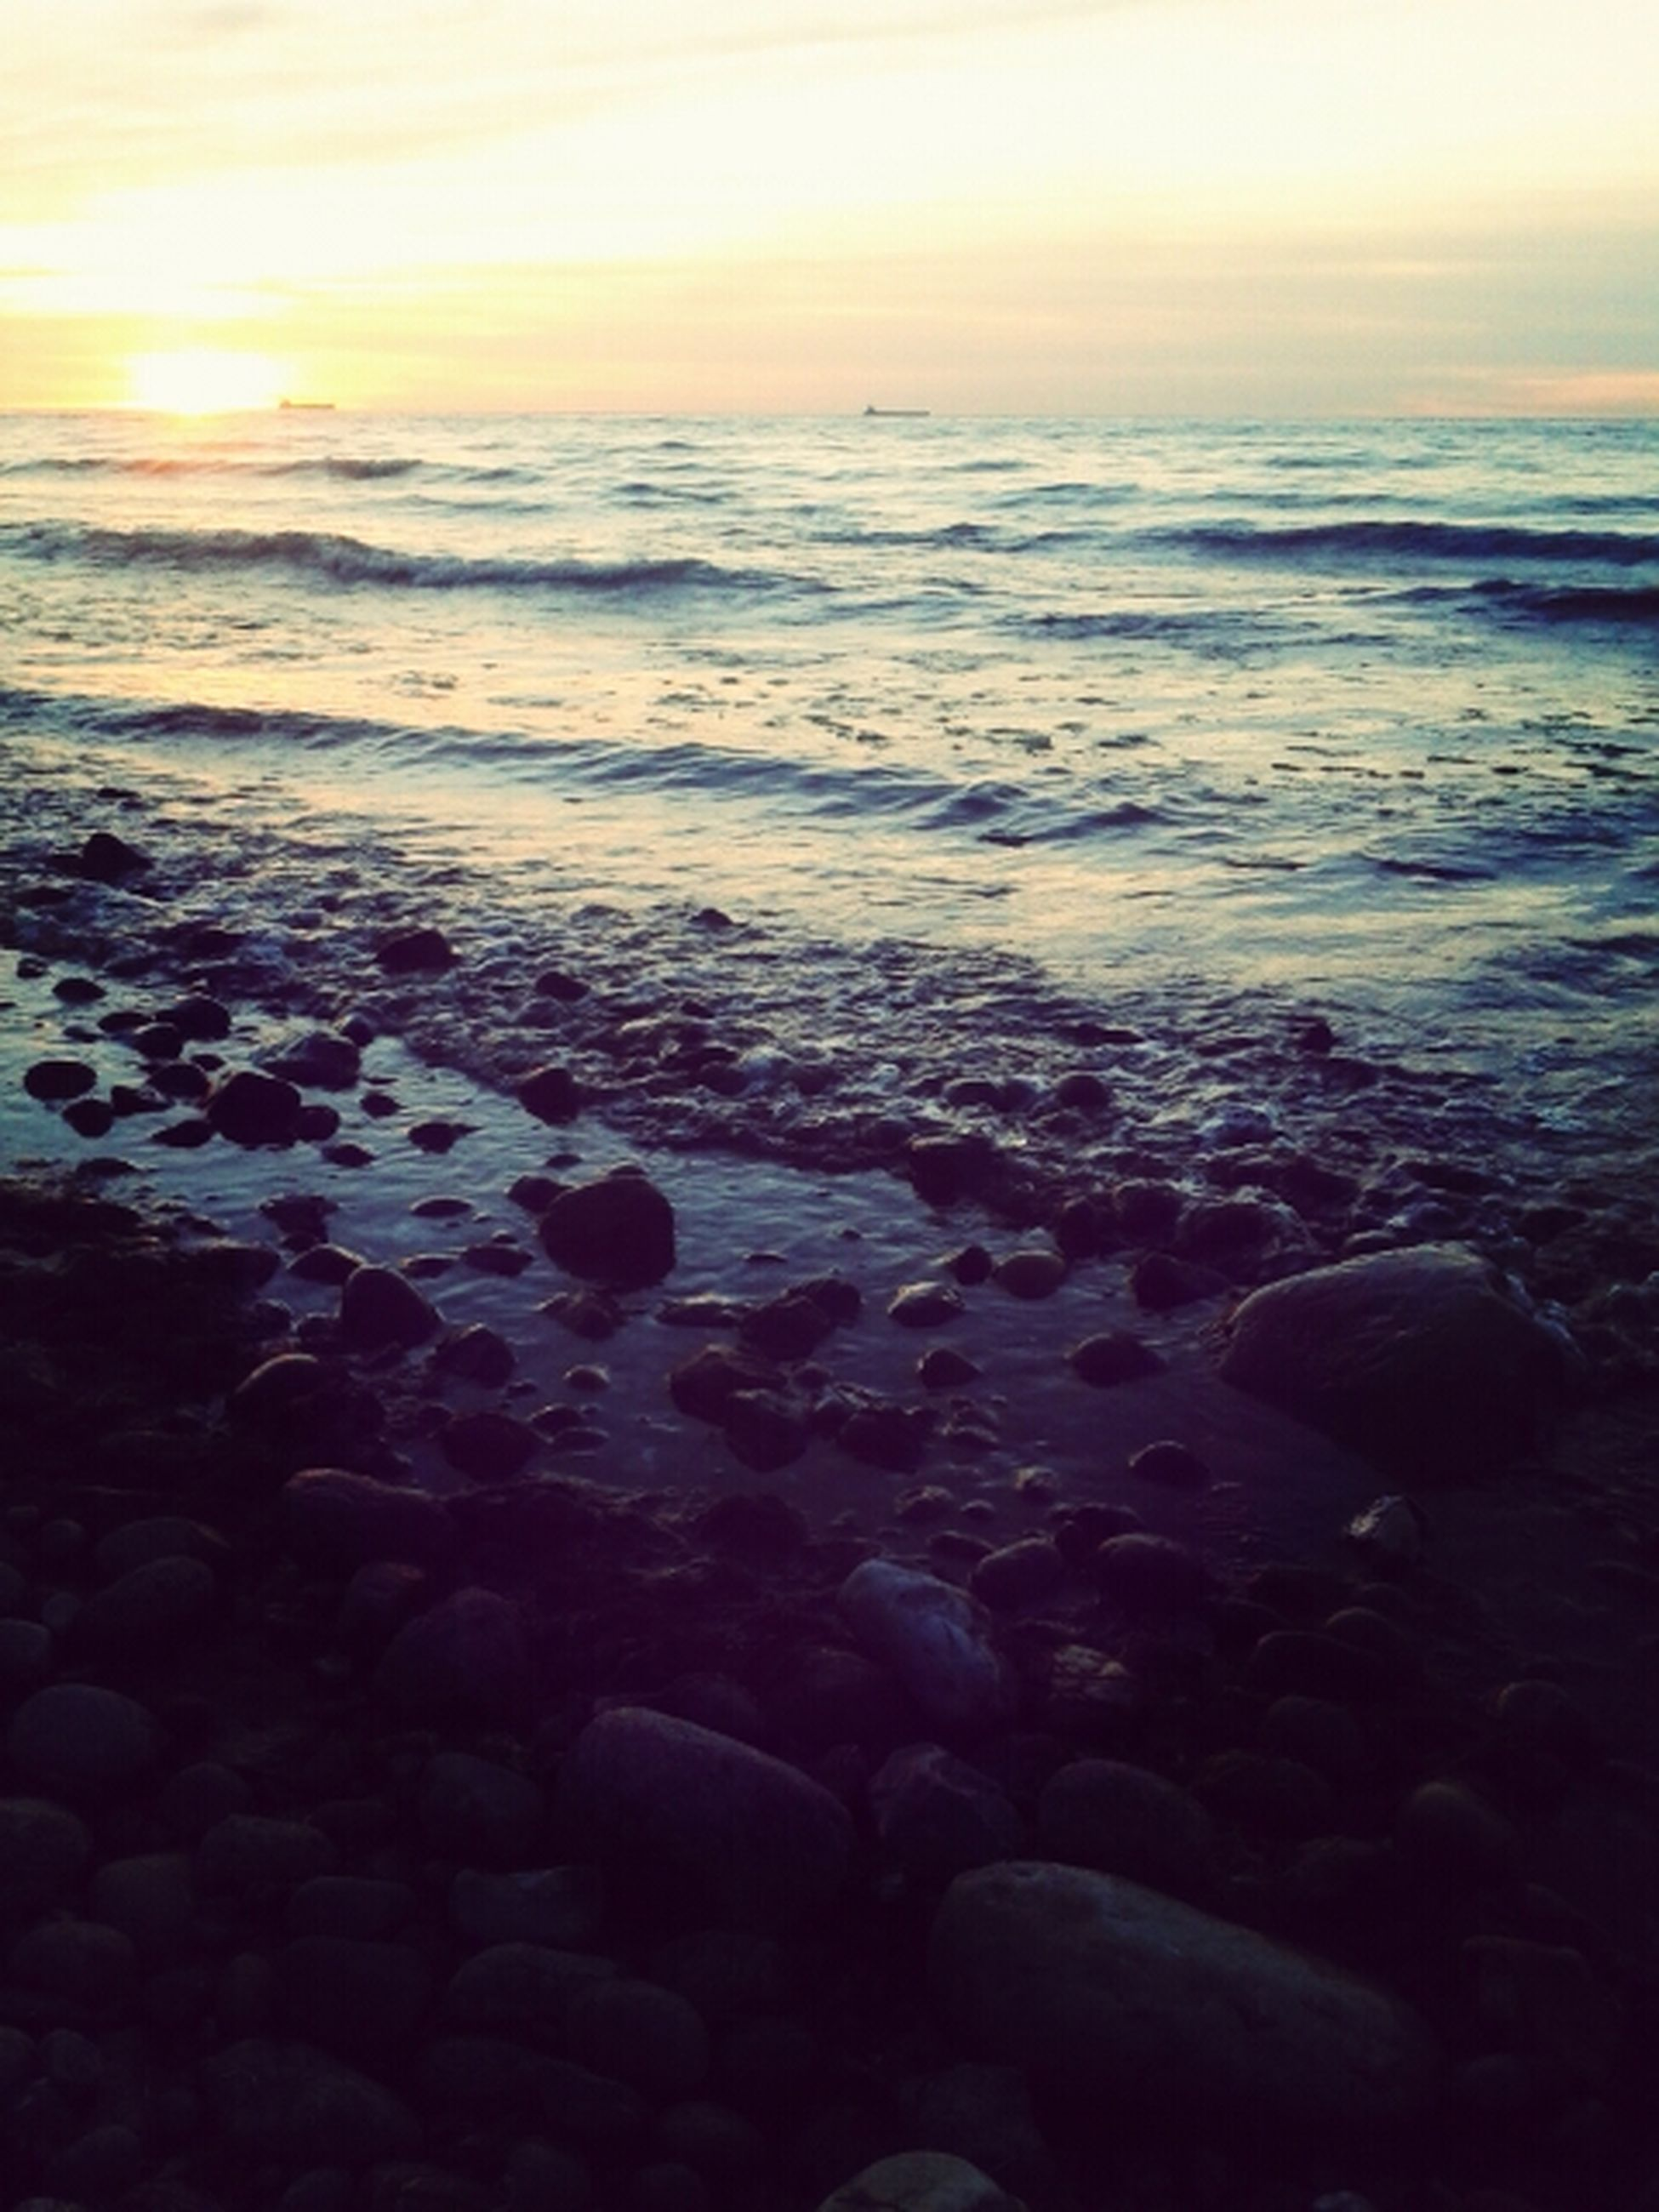 sea, beach, horizon over water, water, sunset, scenics, shore, beauty in nature, tranquil scene, tranquility, sun, nature, sky, idyllic, rock - object, wave, sunlight, stone - object, sand, outdoors